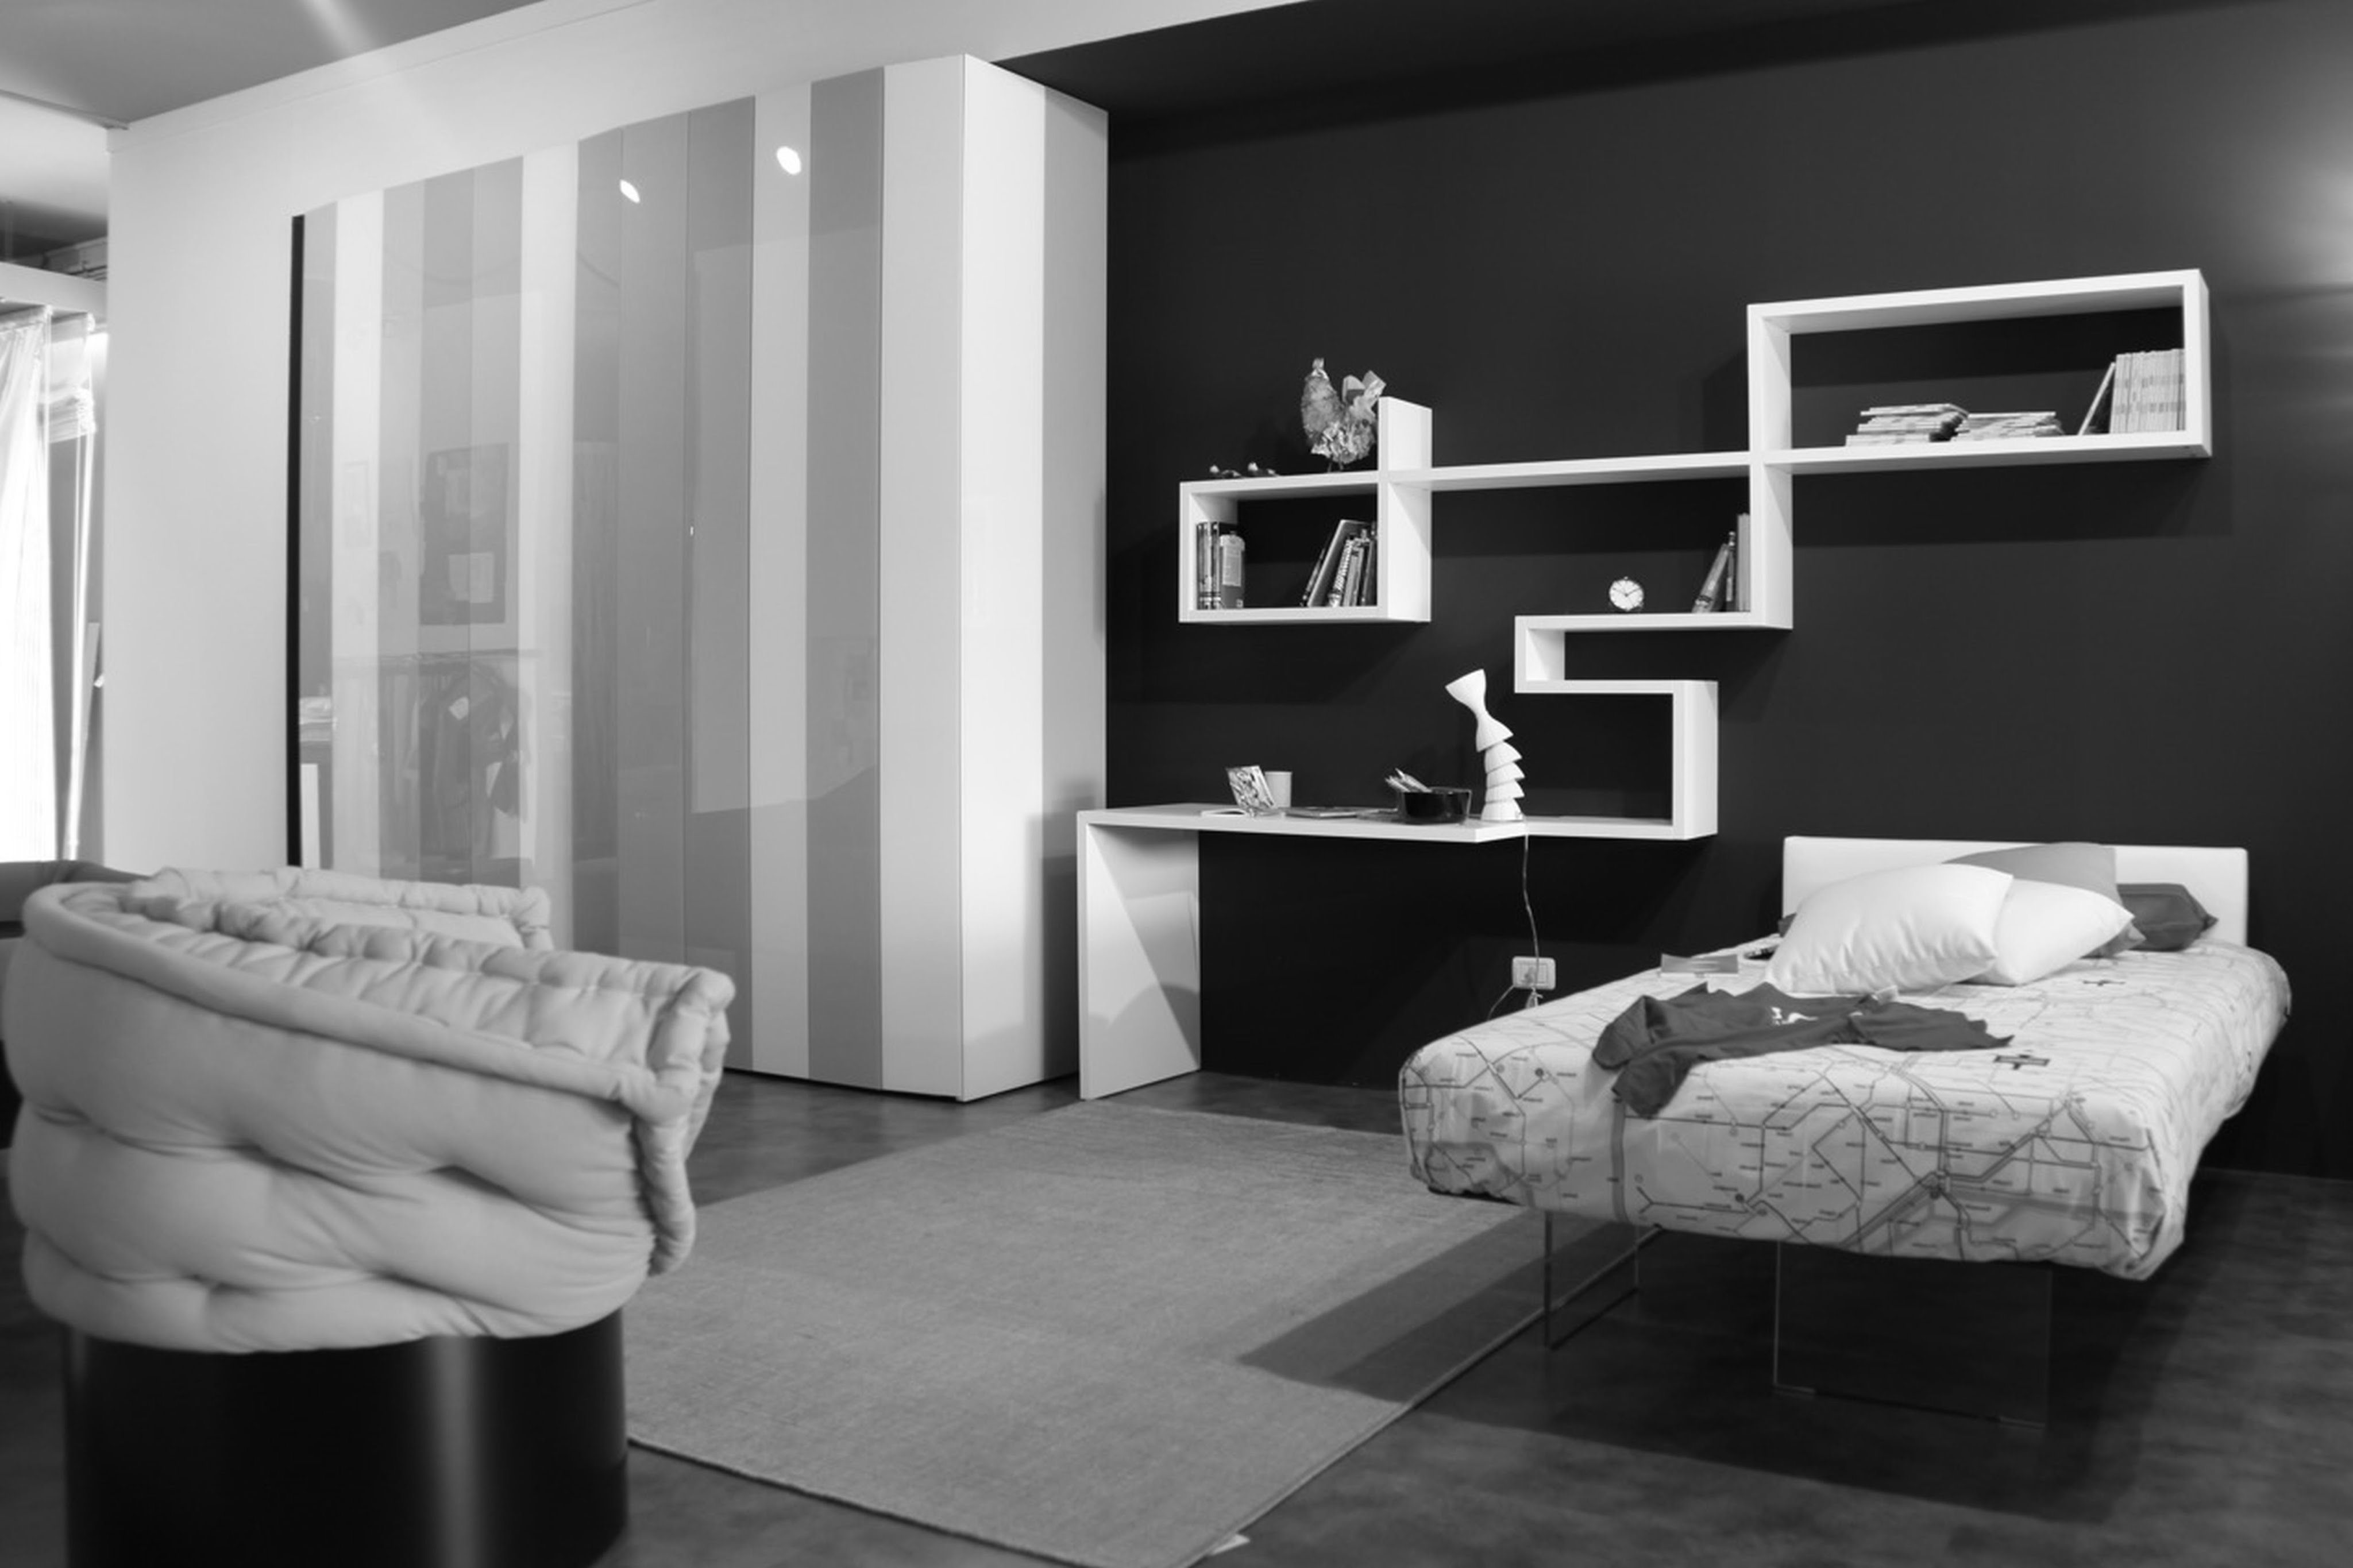 Black And White Wall Art For Bedroom - Home Design Ideas - Youtube with Black And White Wall Art (Image 7 of 20)